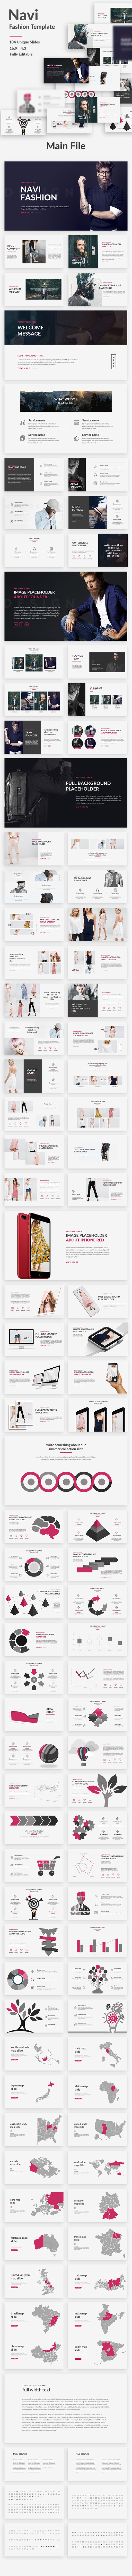 Navi - Fashion Powerpoint Template - PowerPoint Templates Presentation Templates